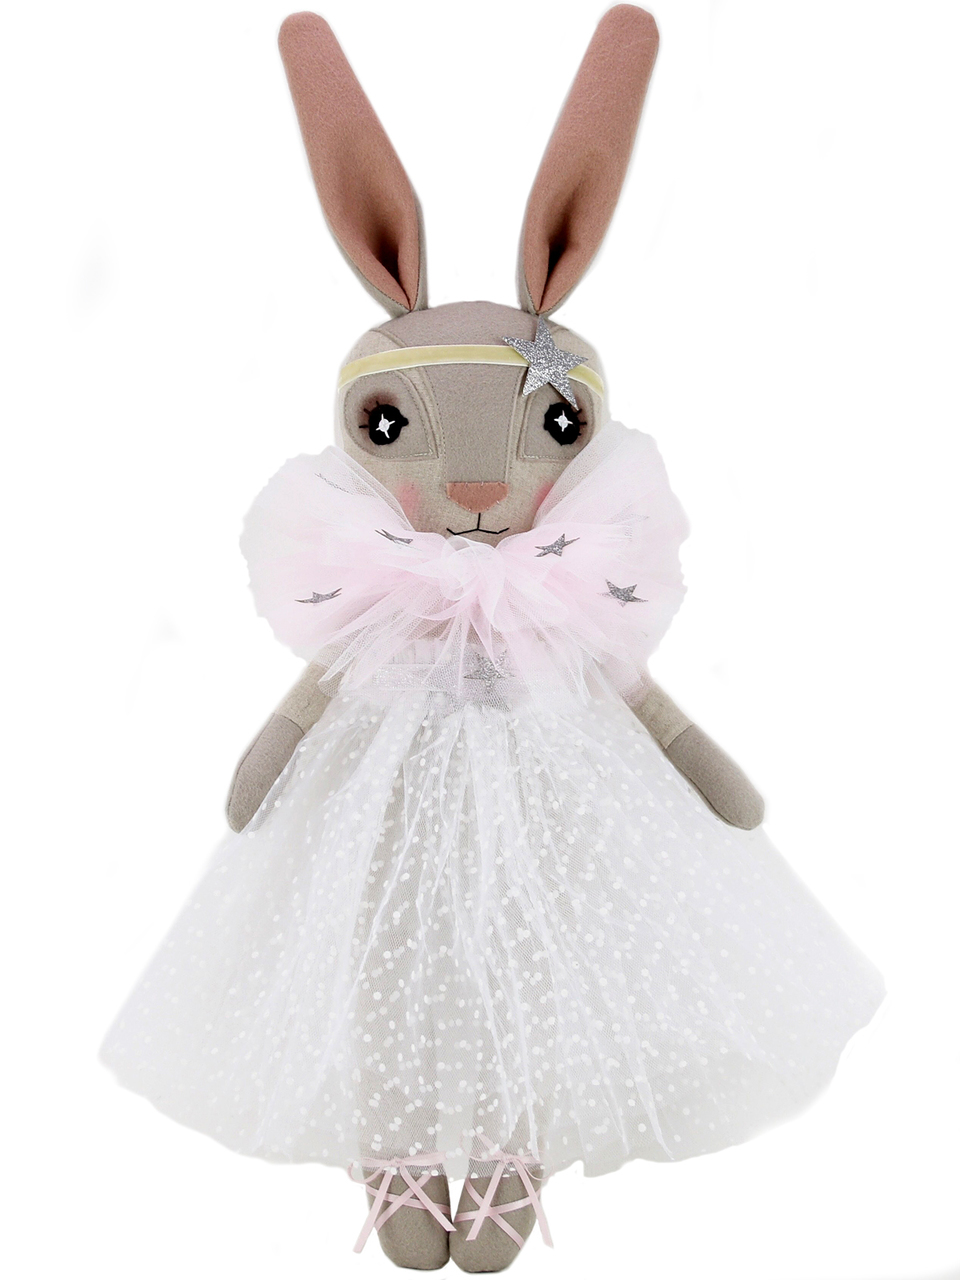 thicket-and-thimble-heirloom-doll-starry-hebe-hare-bunny-1__19257.1542579643.jpg